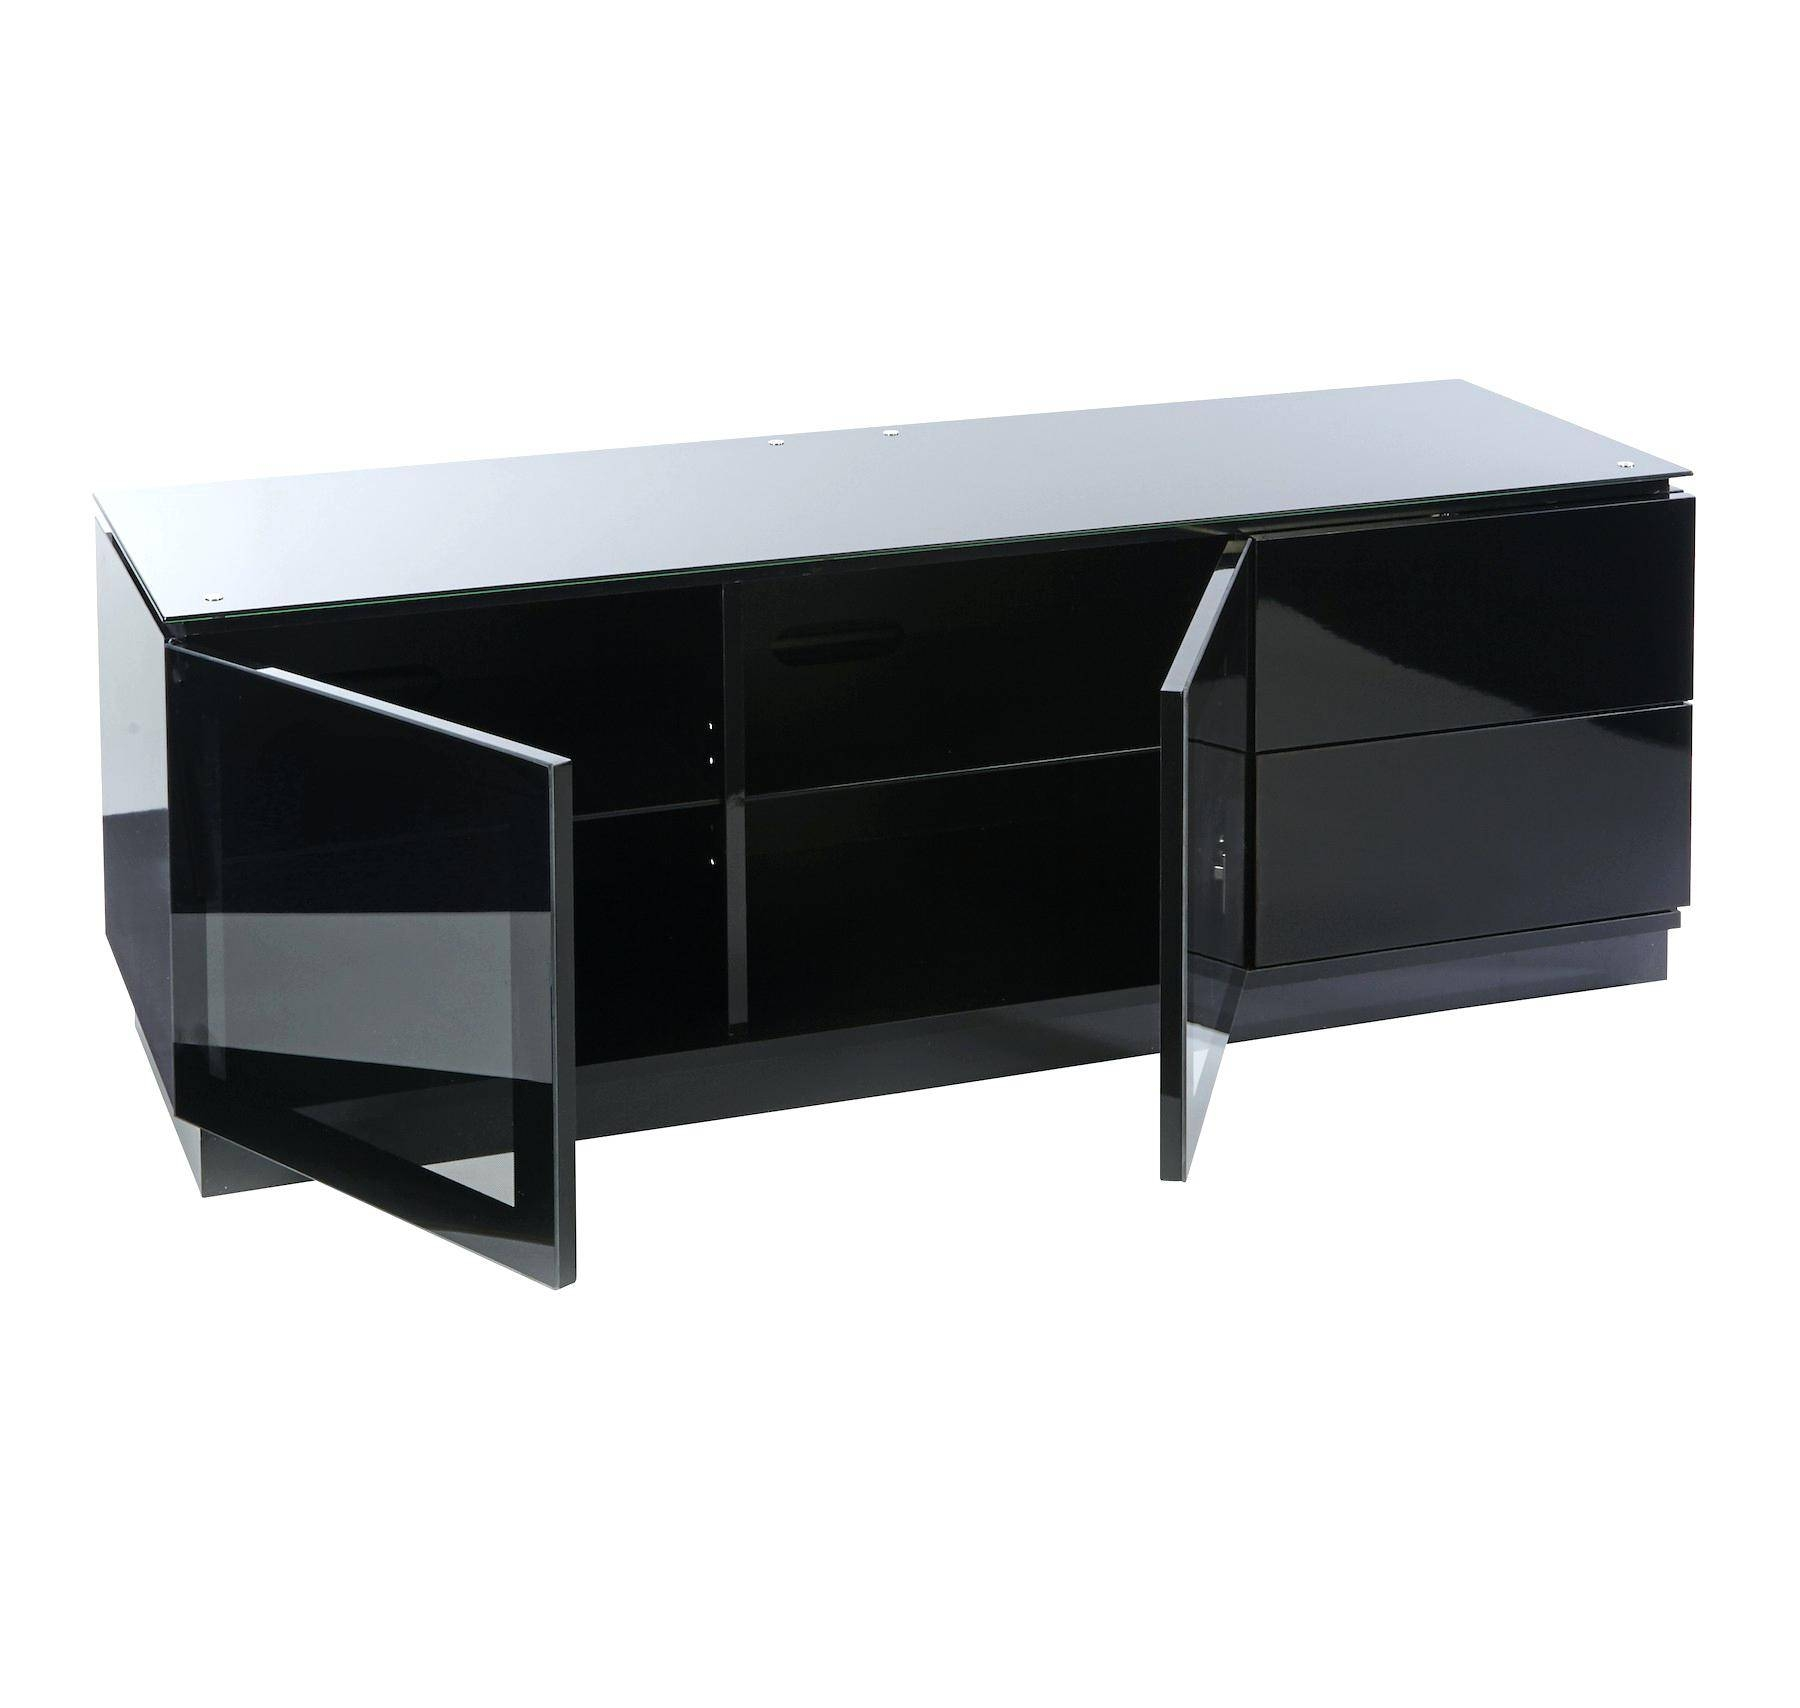 Tv Stand : Black Wood Tv Stand Black Wood Tv Stand Cool Black Wood in Black Gloss Tv Cabinet (Image 15 of 15)